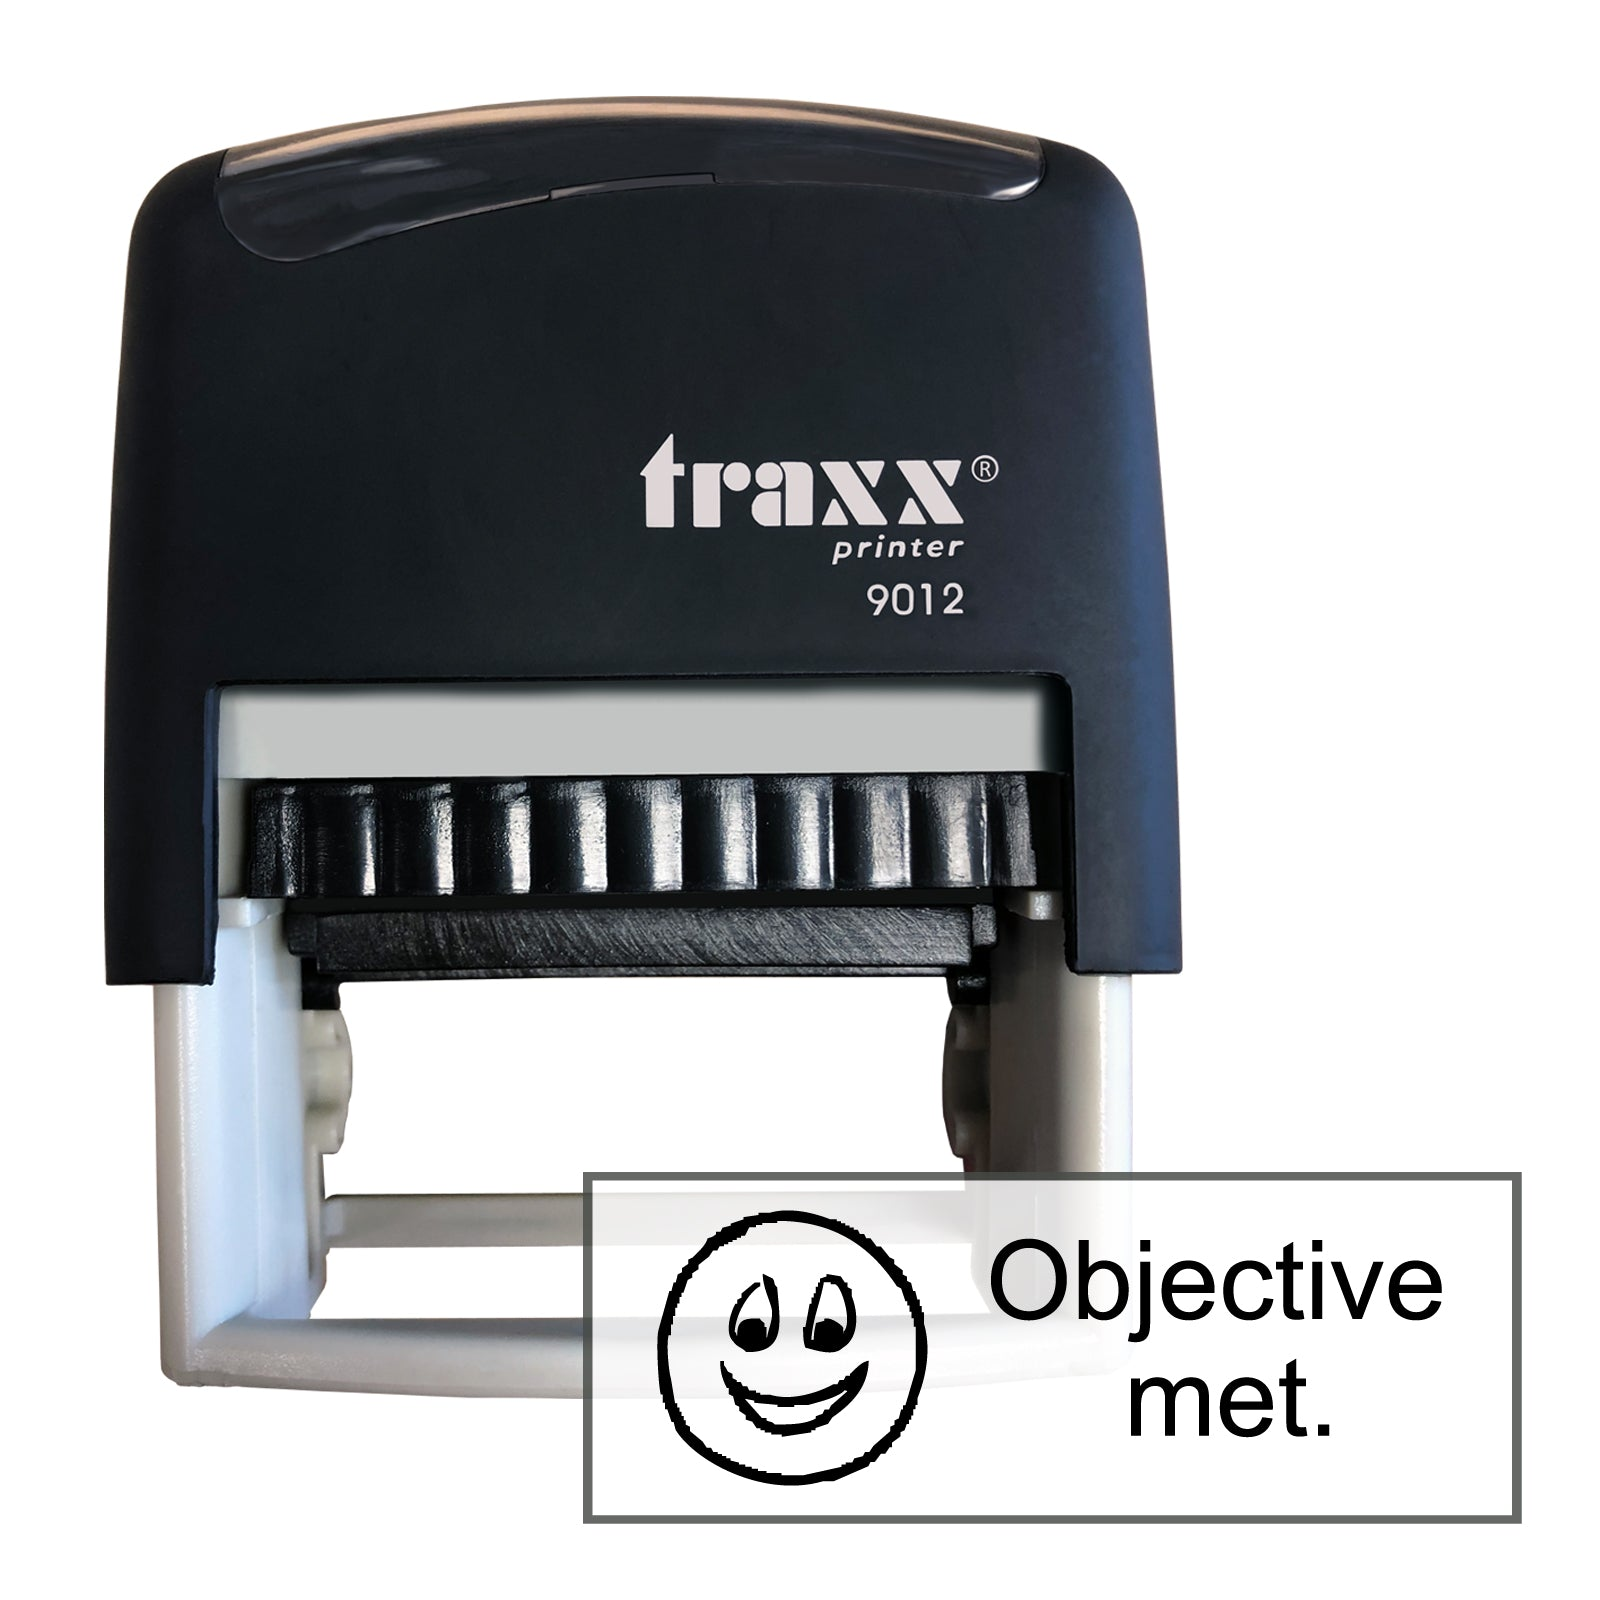 Traxx 9012 48 x 18mm Assessment Stamp - Objective met